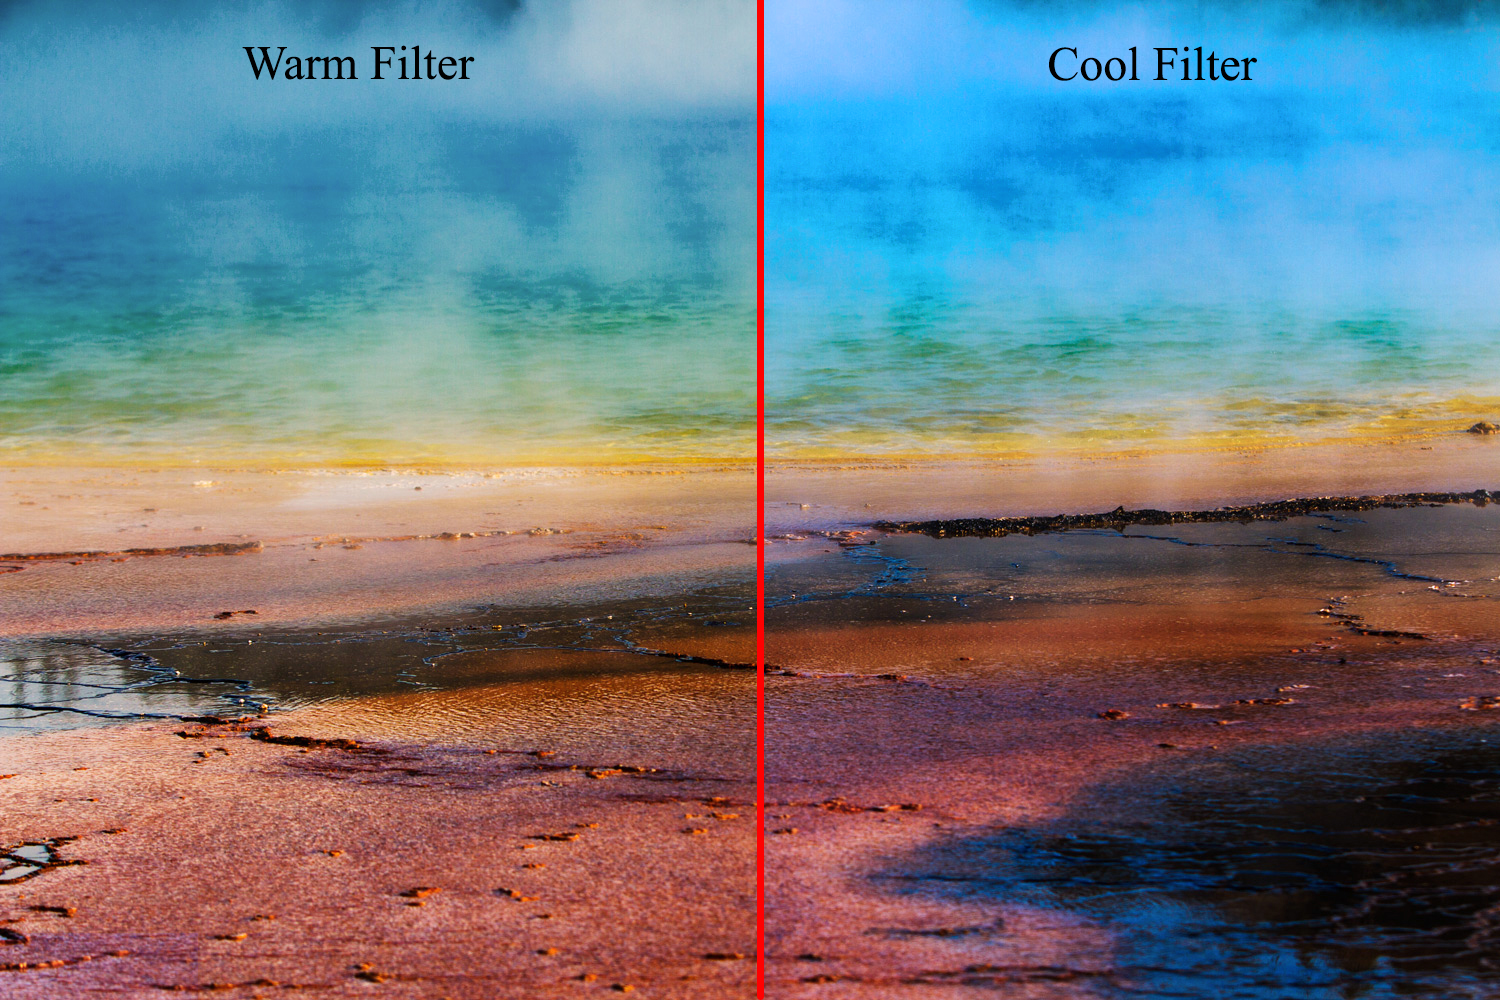 Image: Warm (oranges) and Cool (Blues) Photo filters applied to the image above